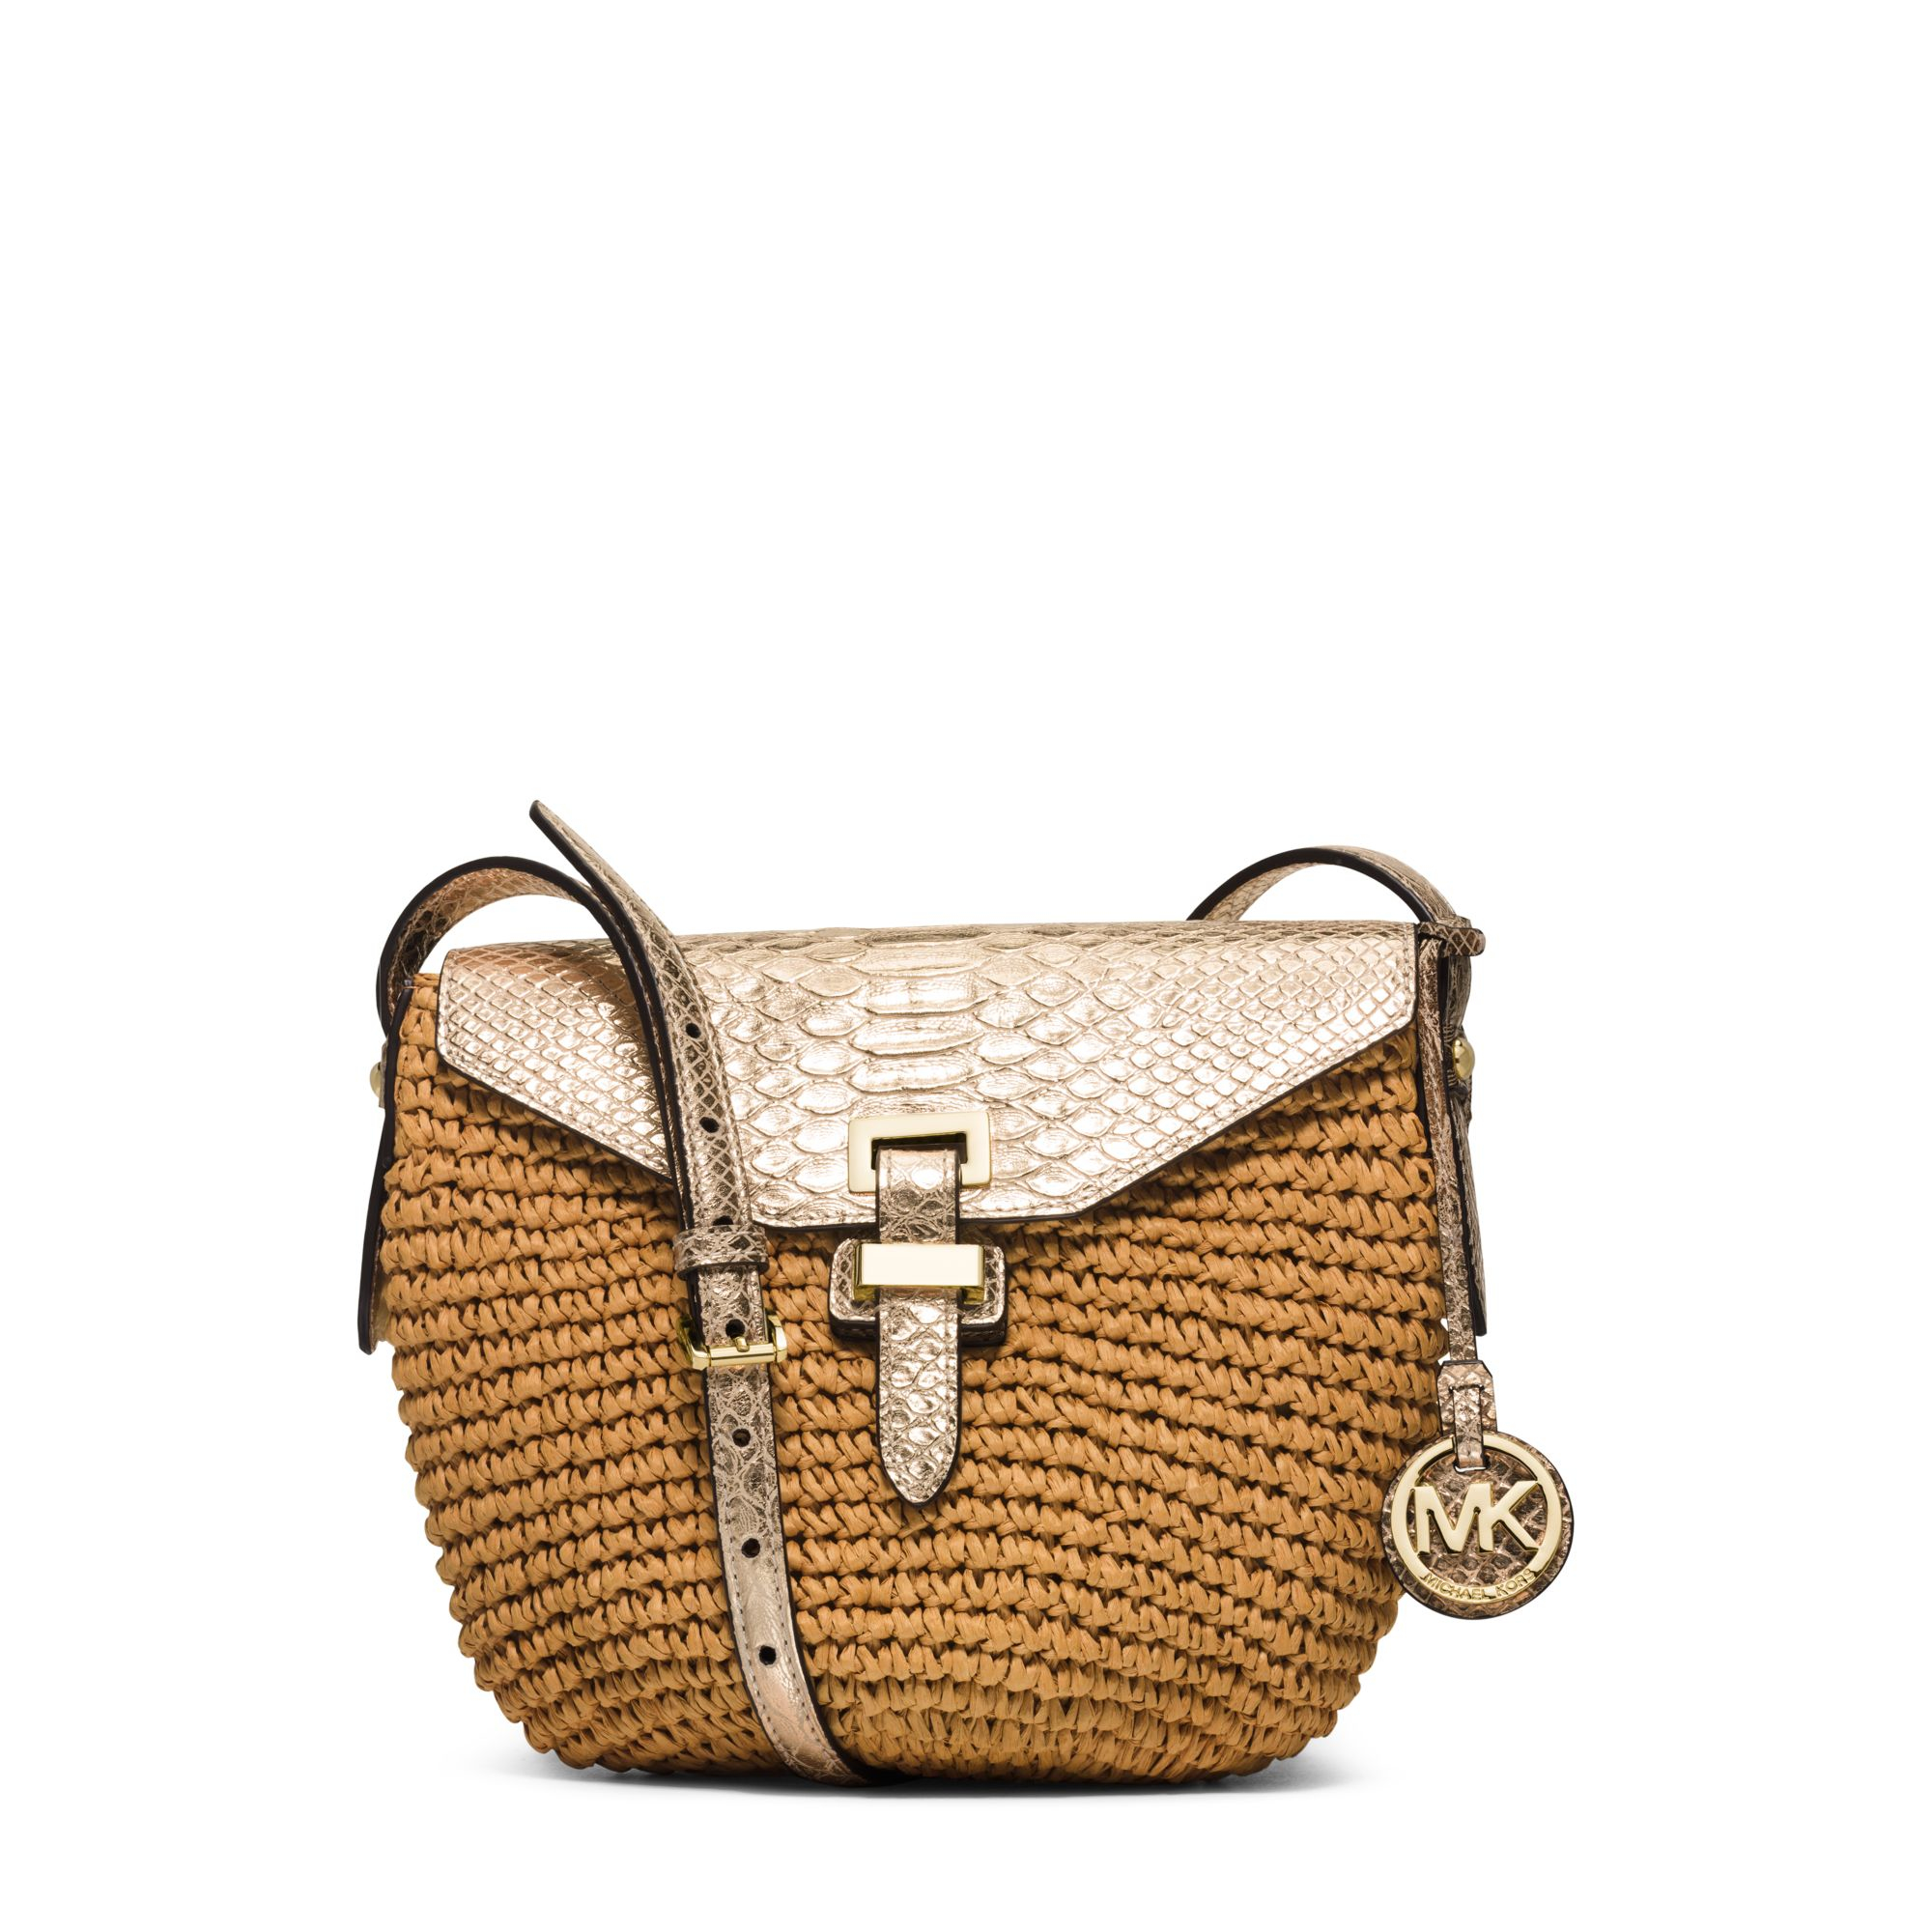 c53ad95feba2d4 uk lyst michael kors naomi medium woven straw crossbody in metallic 0c4f0  dfbbd